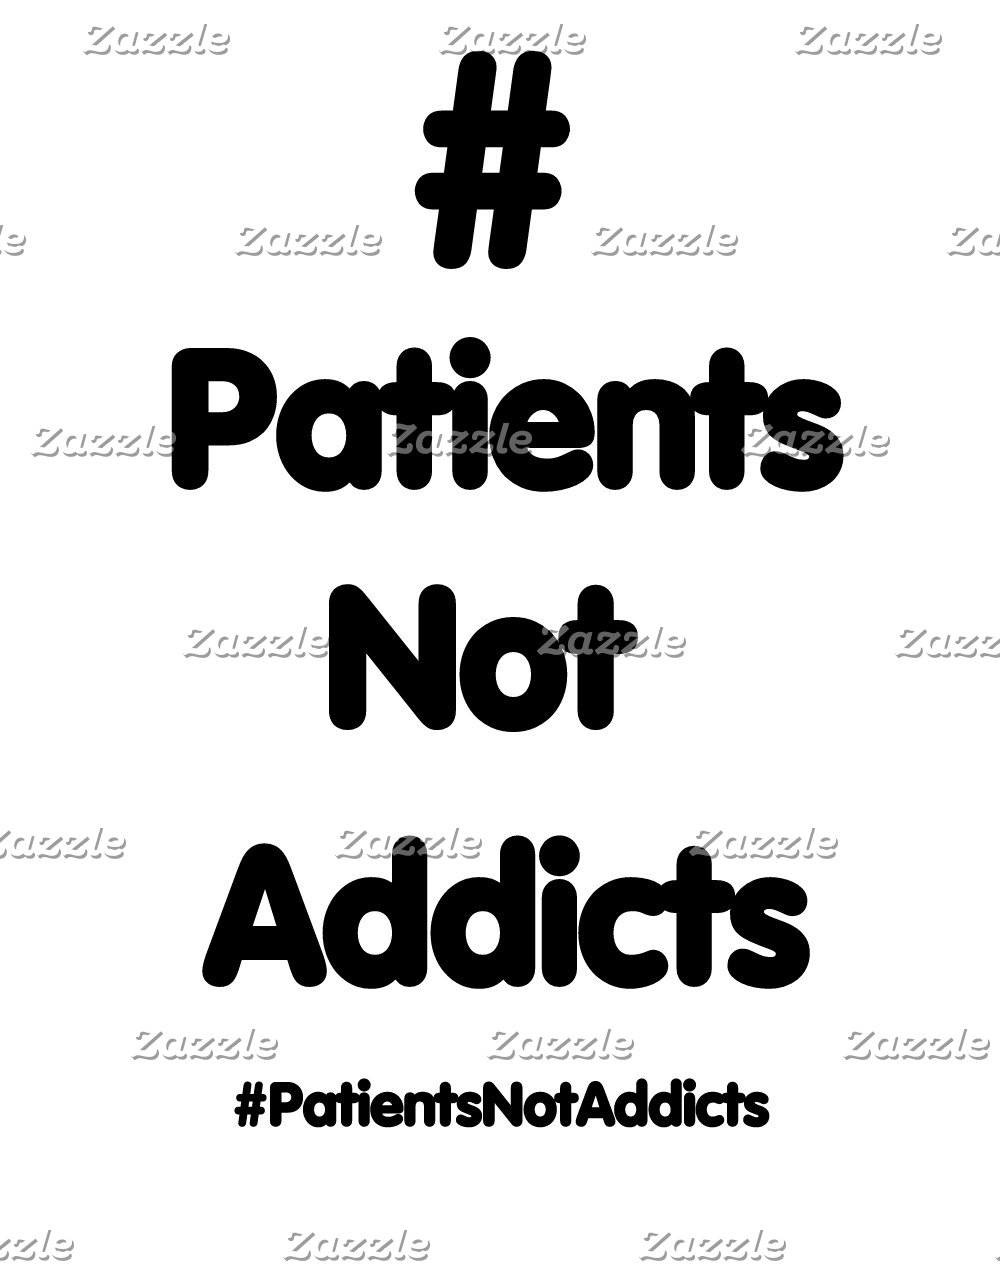 #PatientsNotAddicts